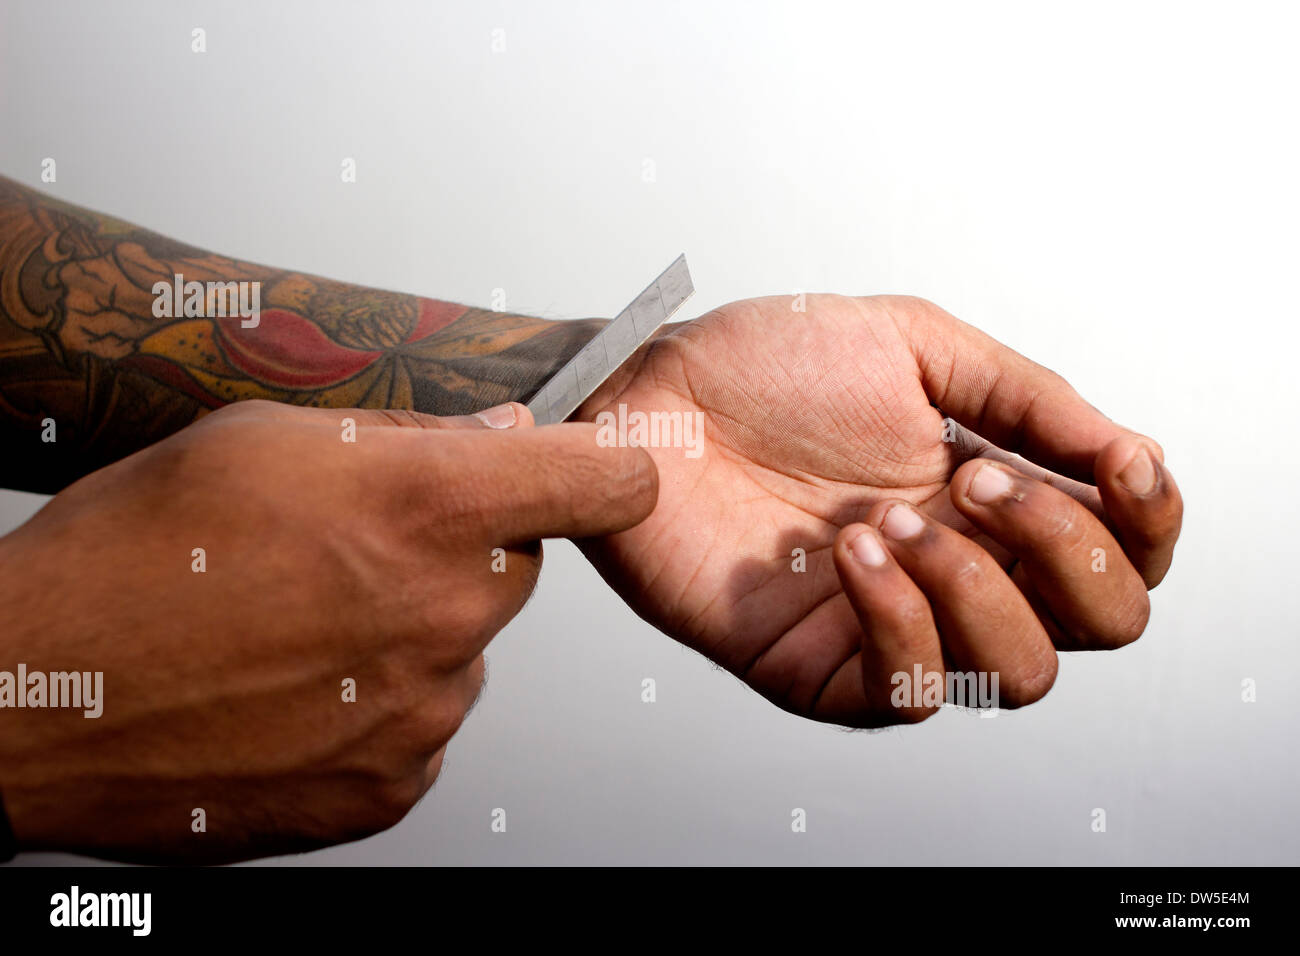 Male with tattoos slitting wrist - Stock Image